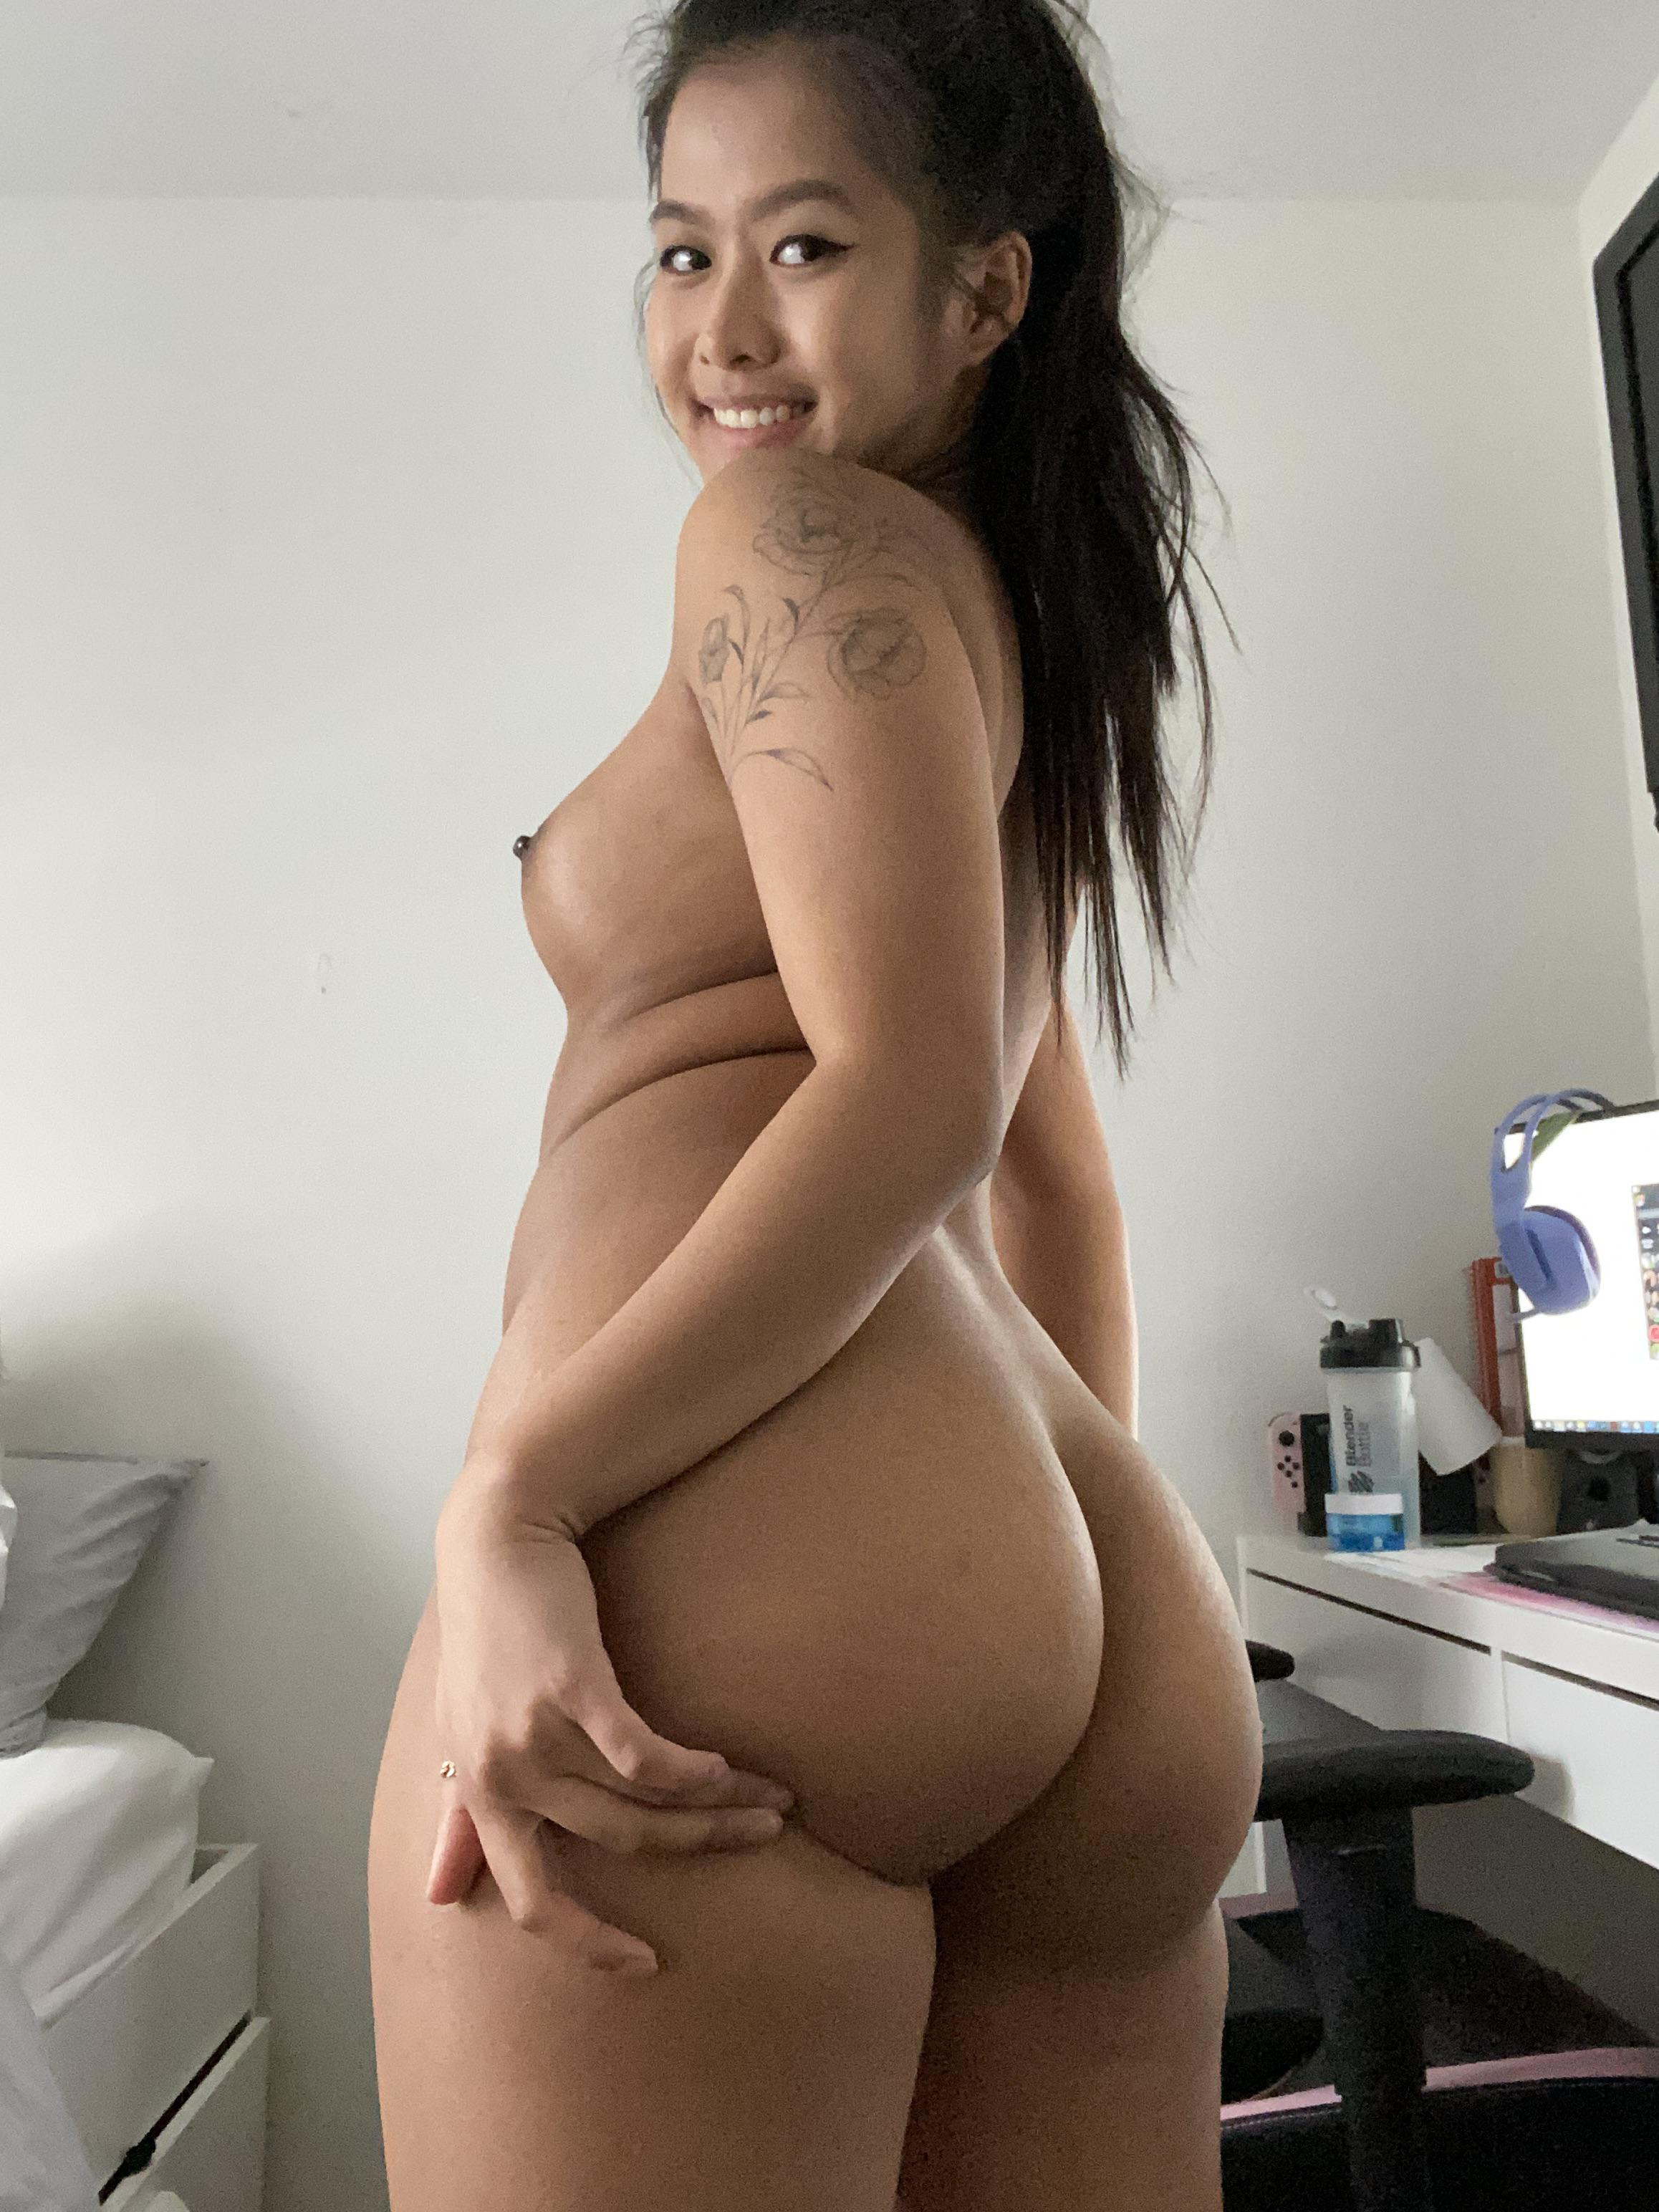 One of our naked asian pics called I also have a big heart ❤️